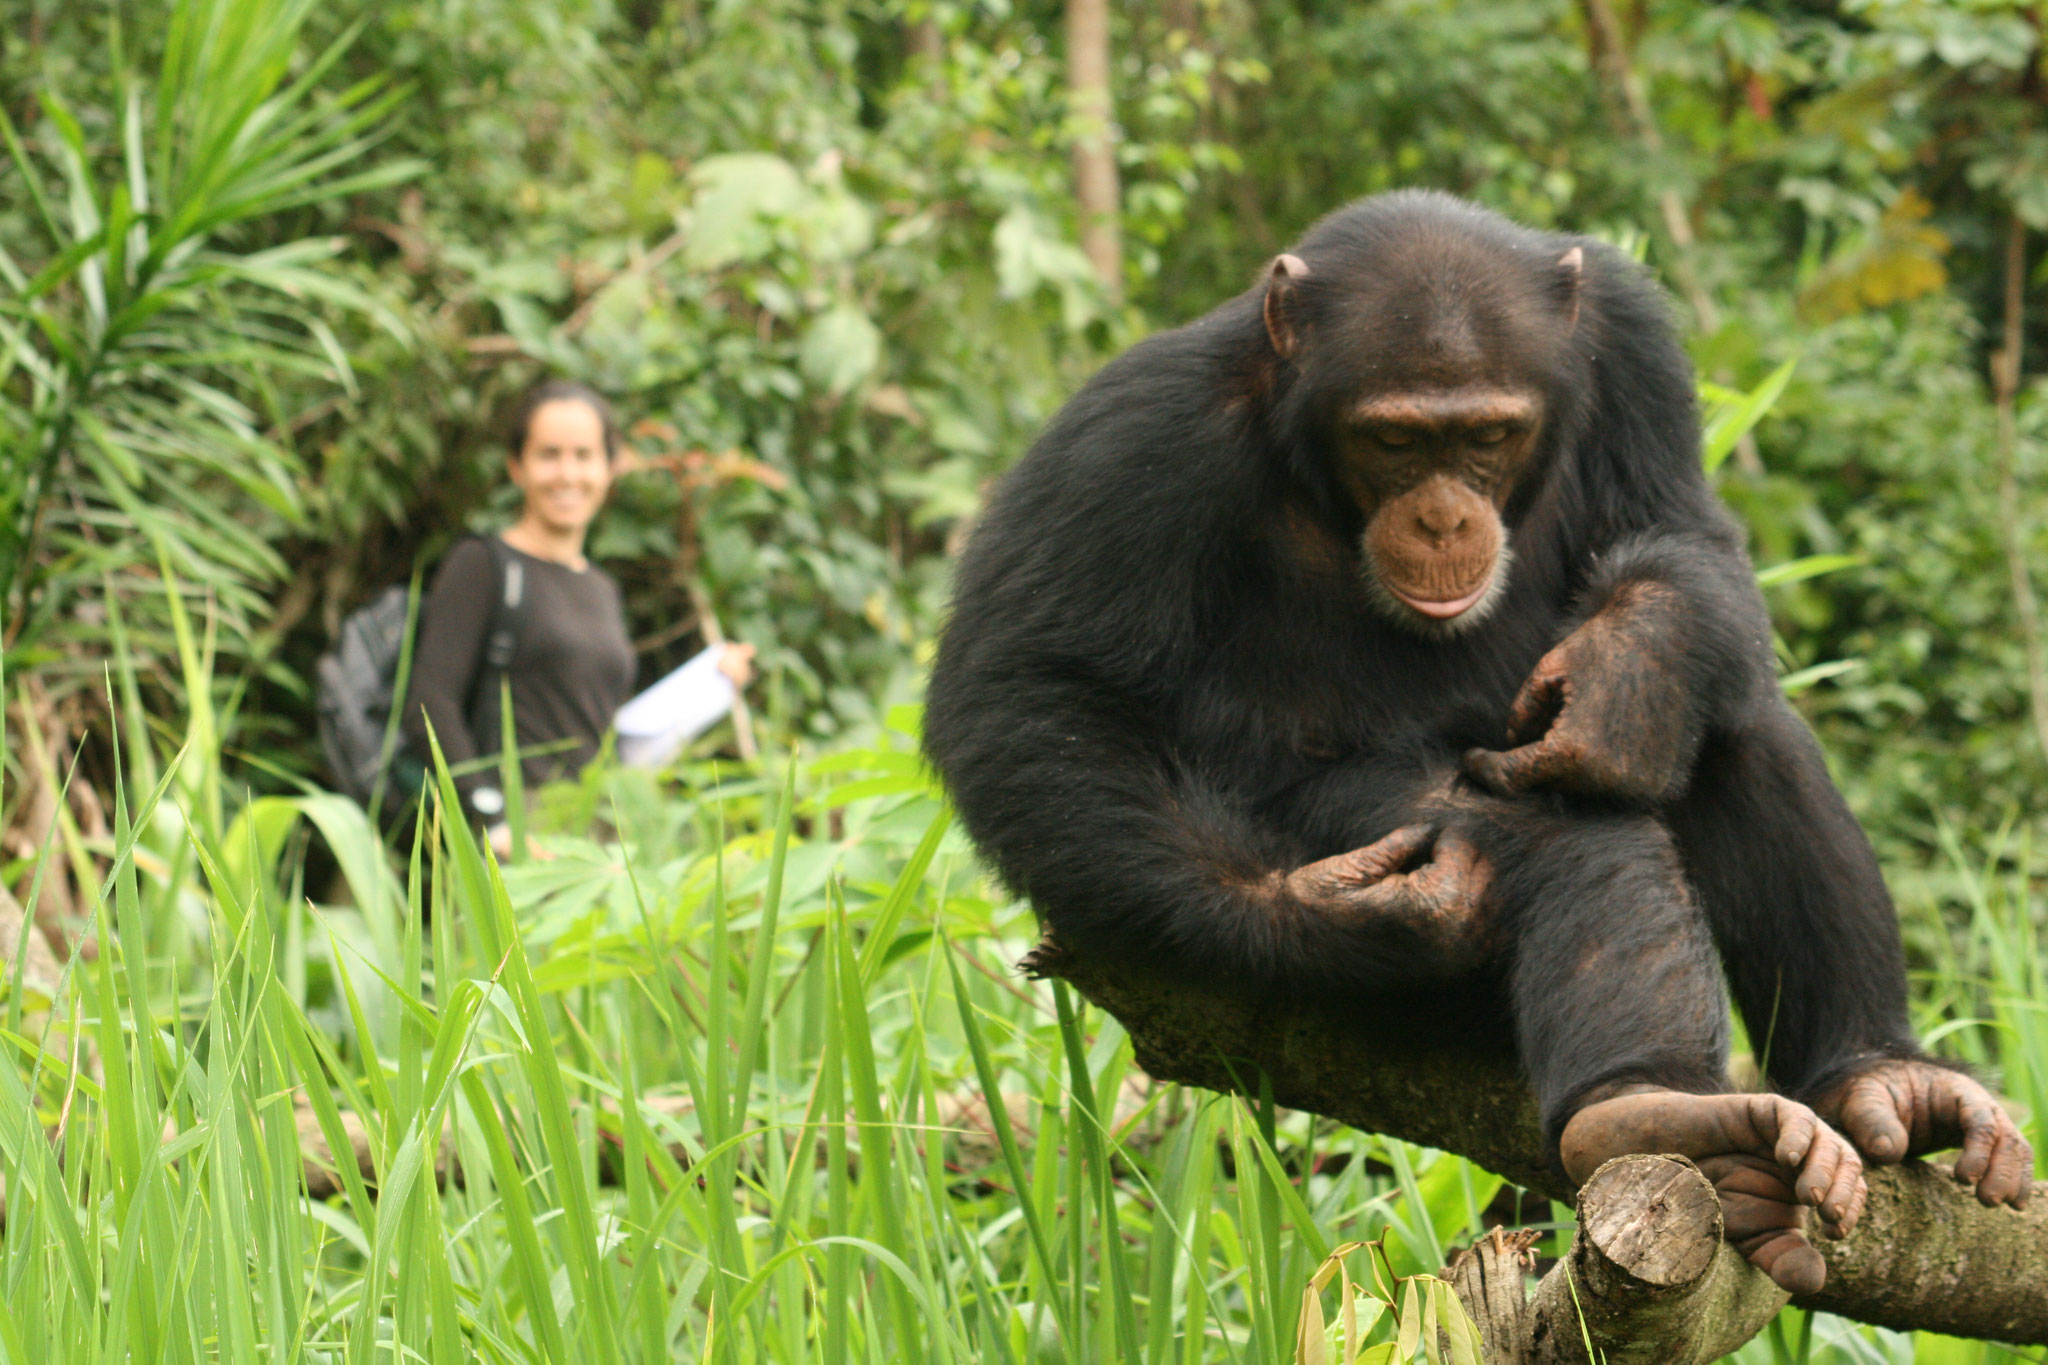 Dr Kimberley Hockings collecting behavioural data on wild chimpanzees in west Africa